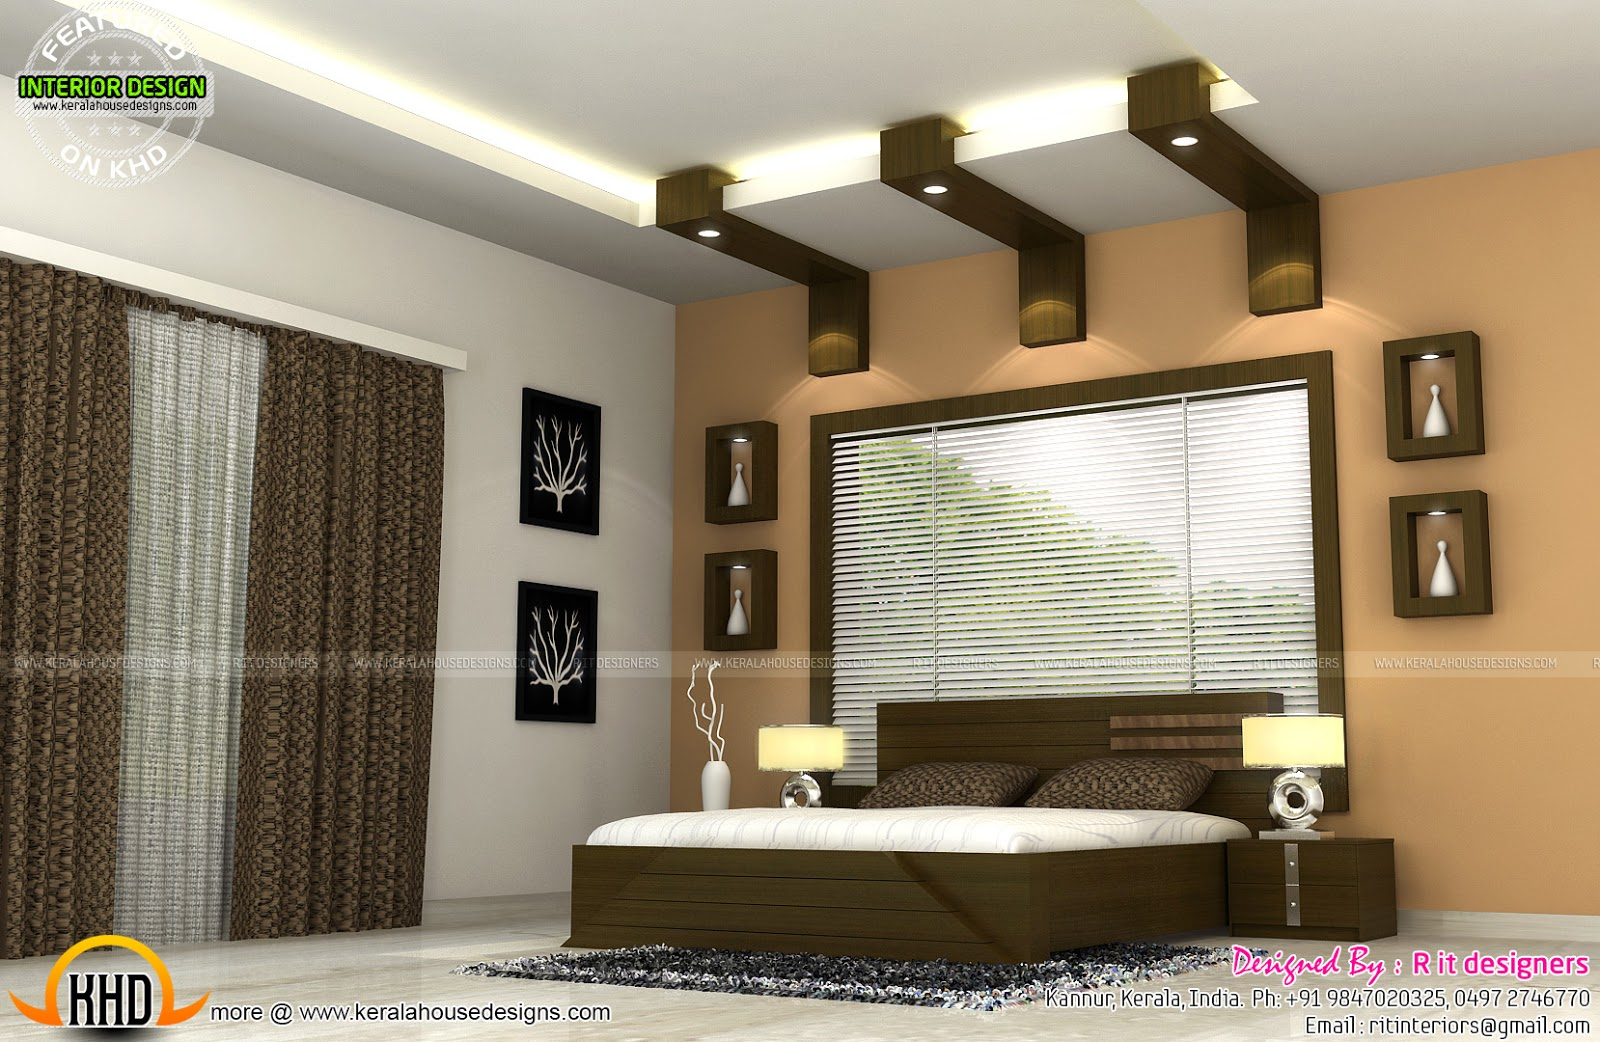 Interiors of bedrooms and kitchen kerala home design and for Indoor home design picture